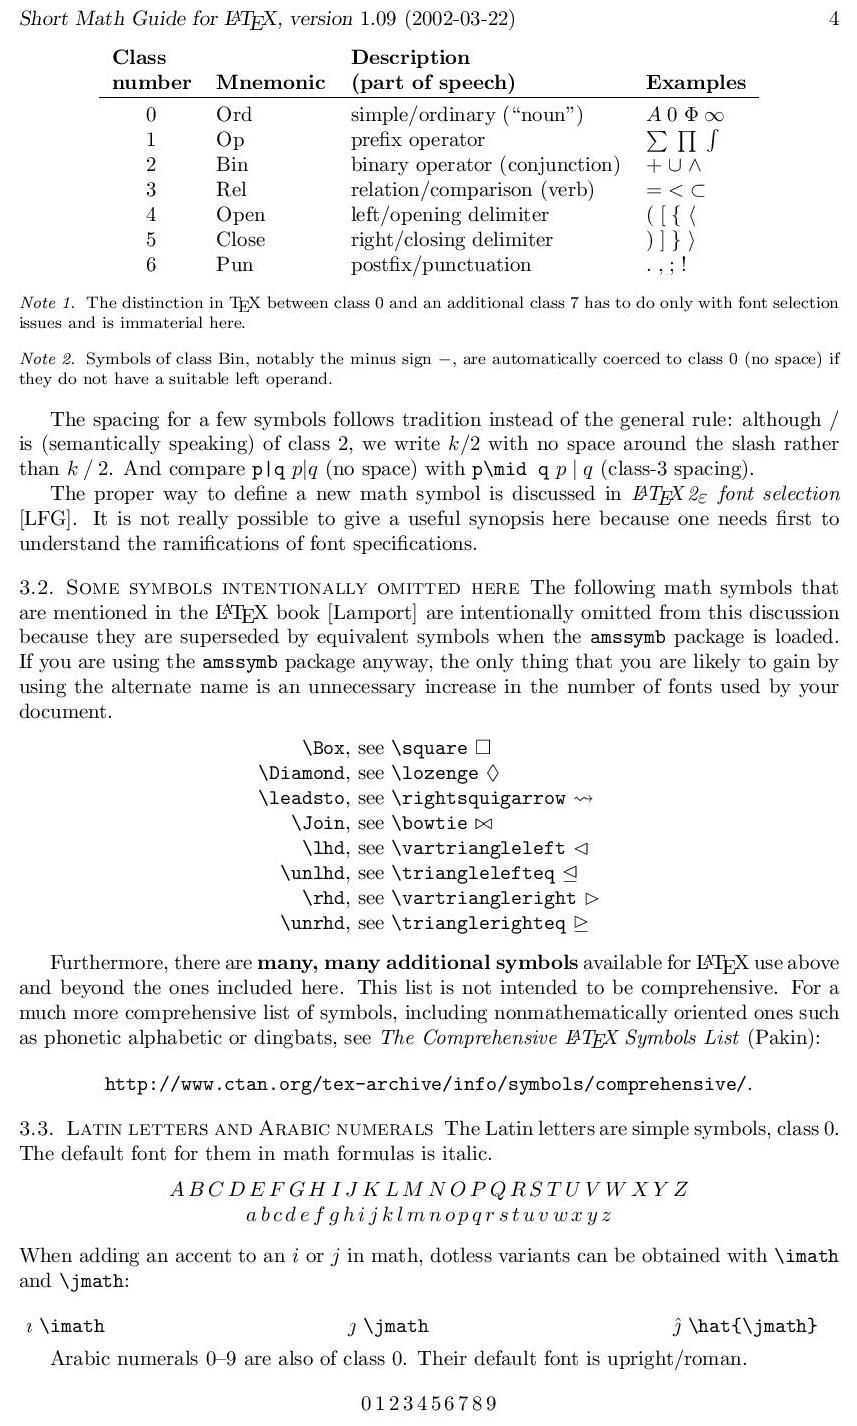 Computer inquisitive august 2013 please feel free to share document which contain more symbols related to mathematics buycottarizona